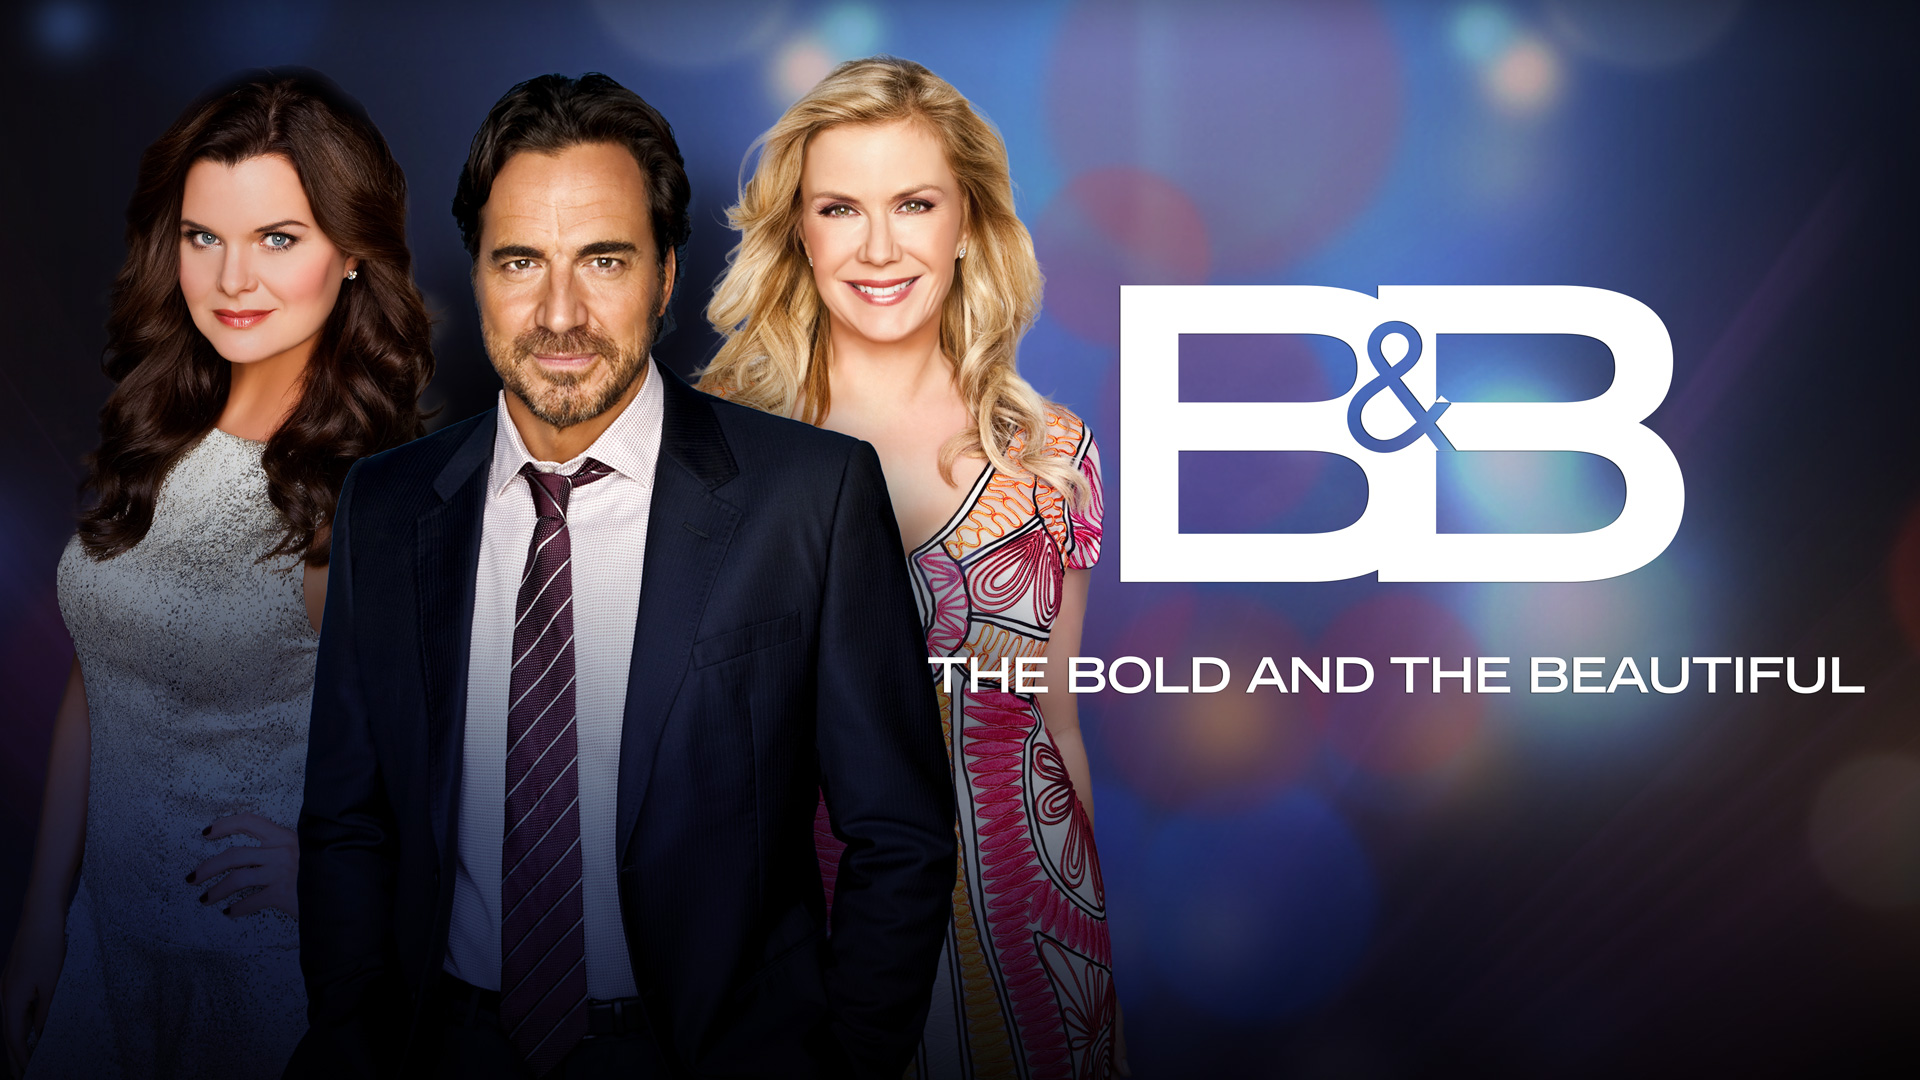 The Bold and the Beautiful will be pre-empted on Thursday, March 16 and Friday March 17, due to CBS Sports coverage of NCAA's March Madness.